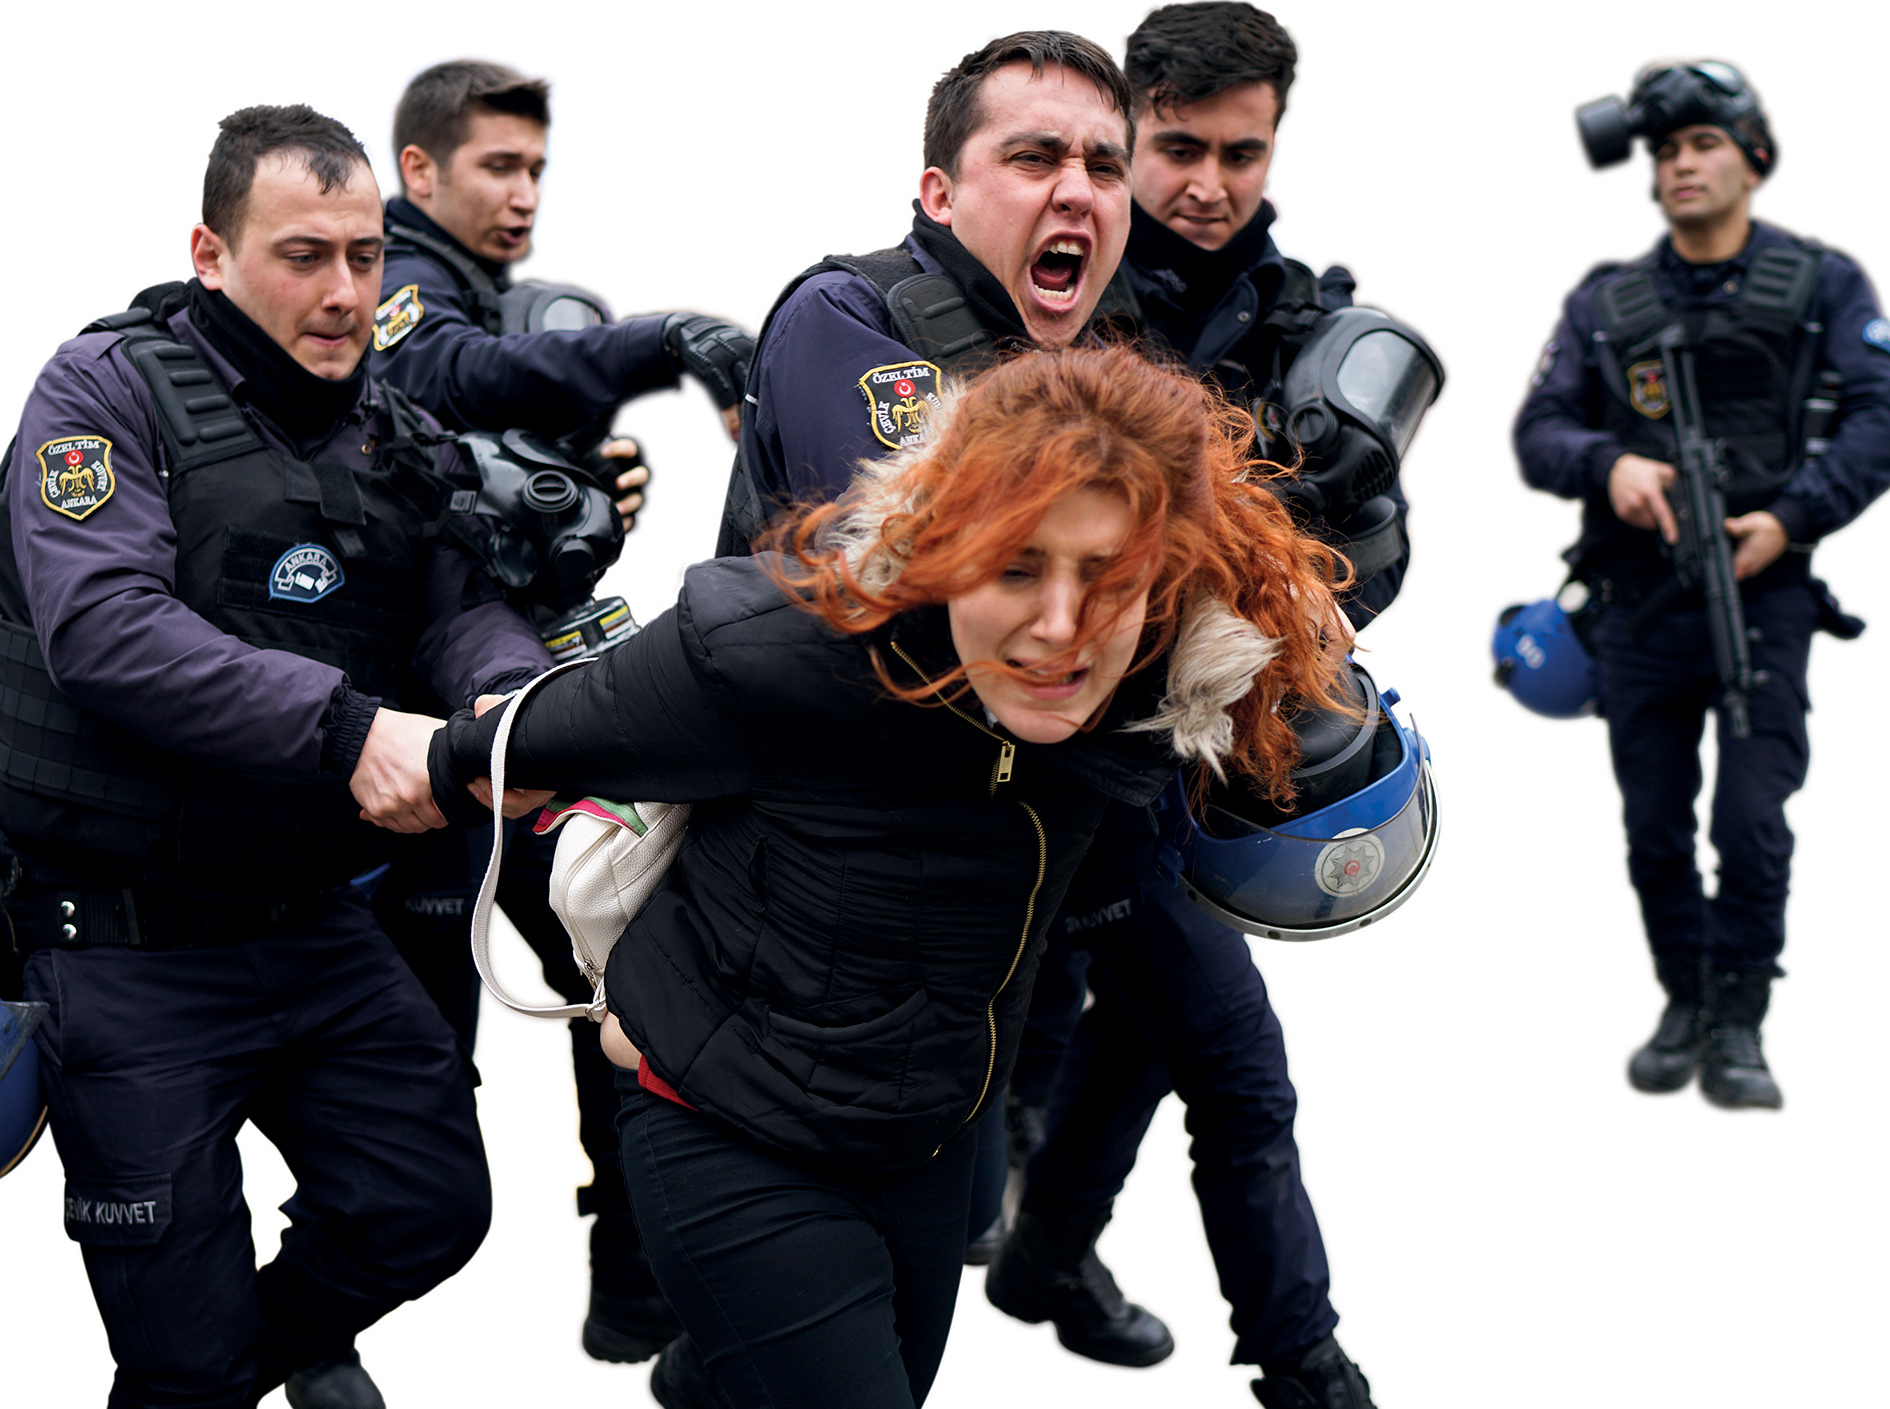 Turkish riot police crack down on people protesting against the purge of academics, outside Ankara University.